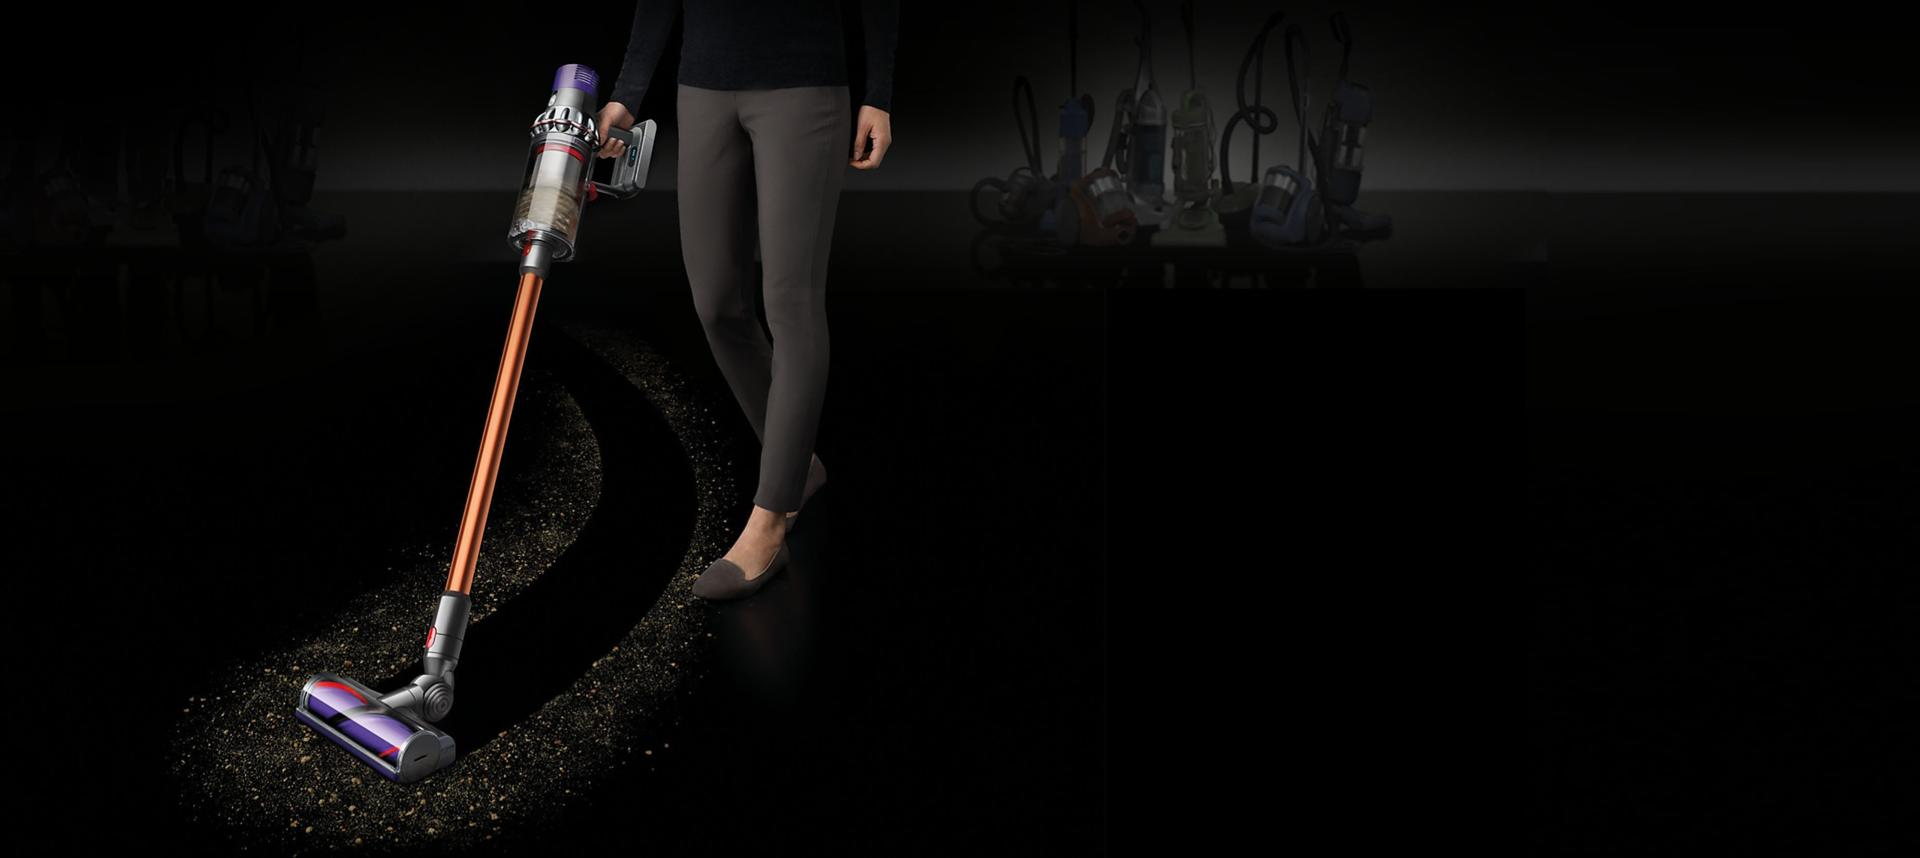 Dyson Cyclone V10™ vacuum cleaner on black floor